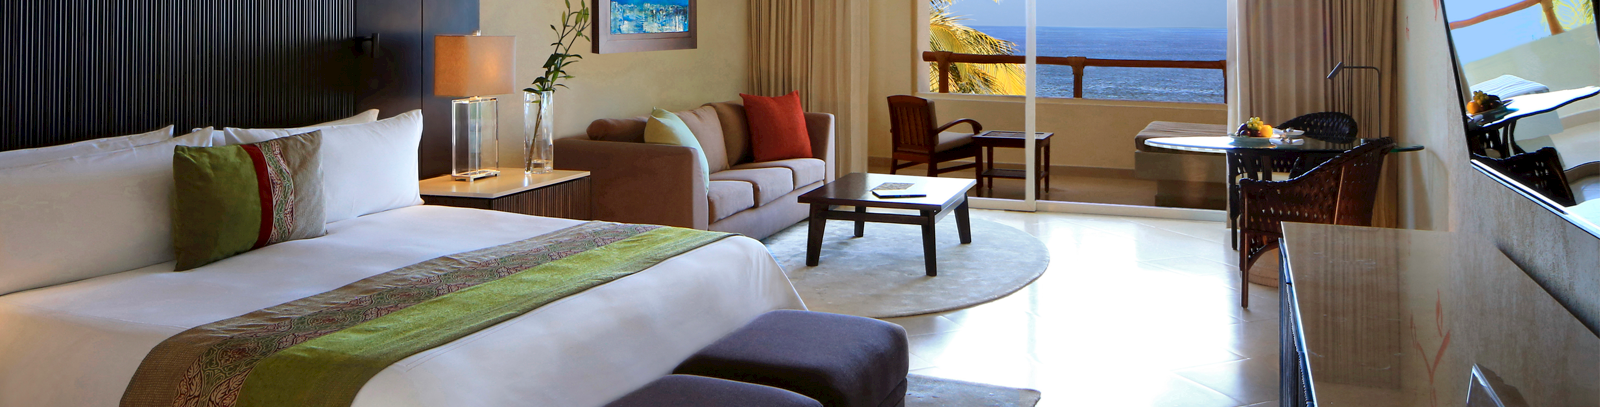 Grand Velas Riviera Nayarit offering Parlor Suite